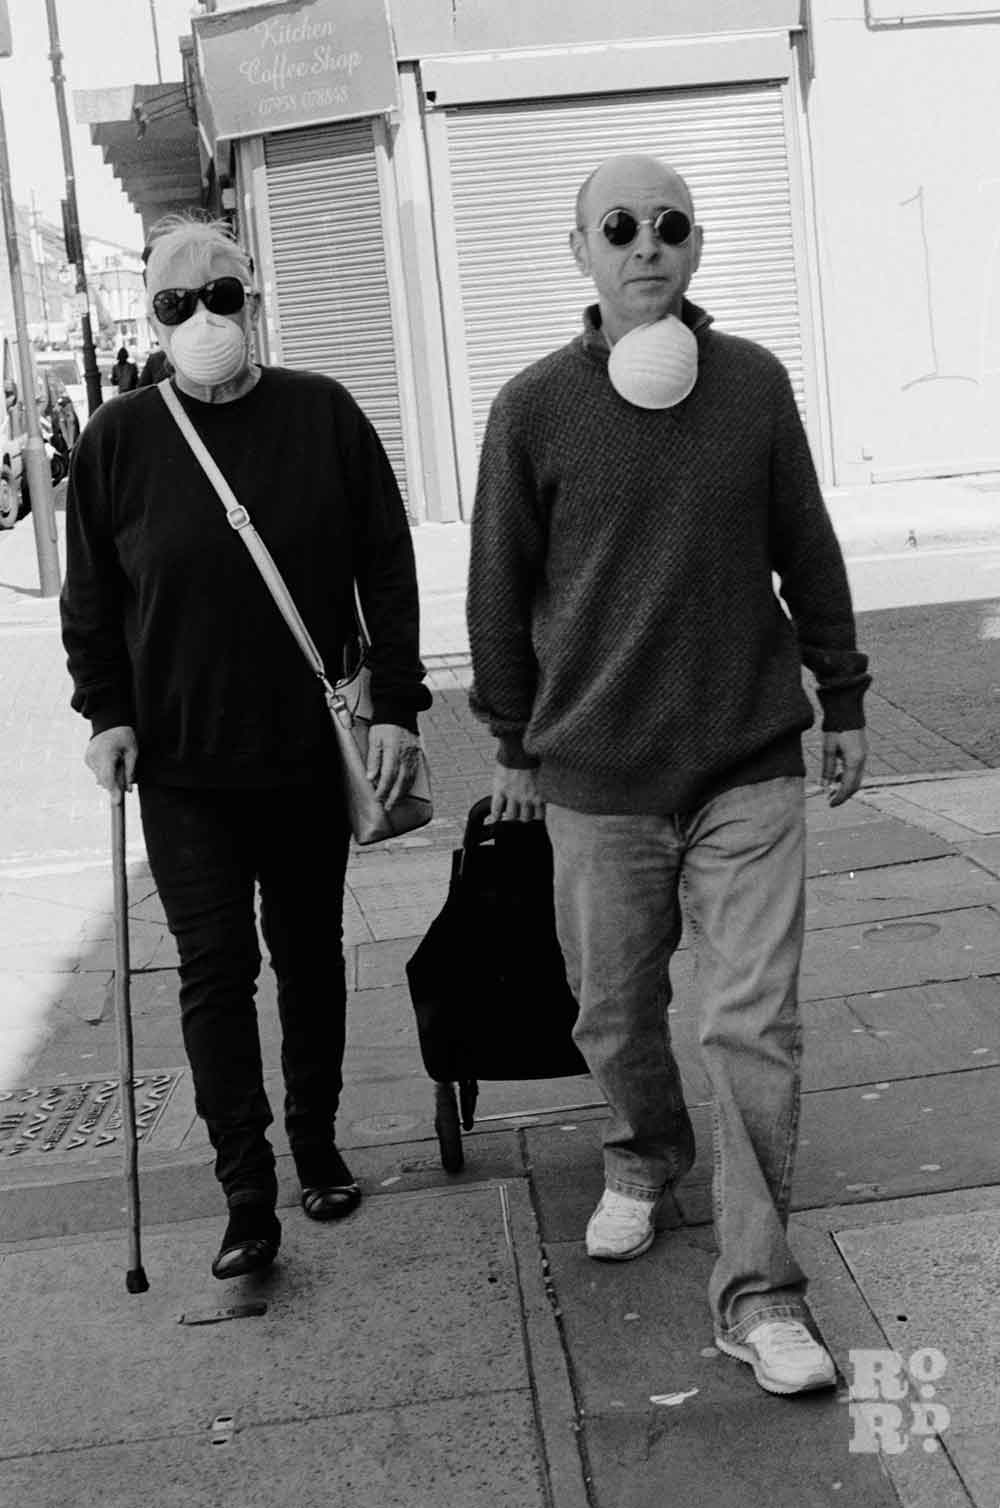 Black and white portrait of a woman and a man in masks walking down Roman Road